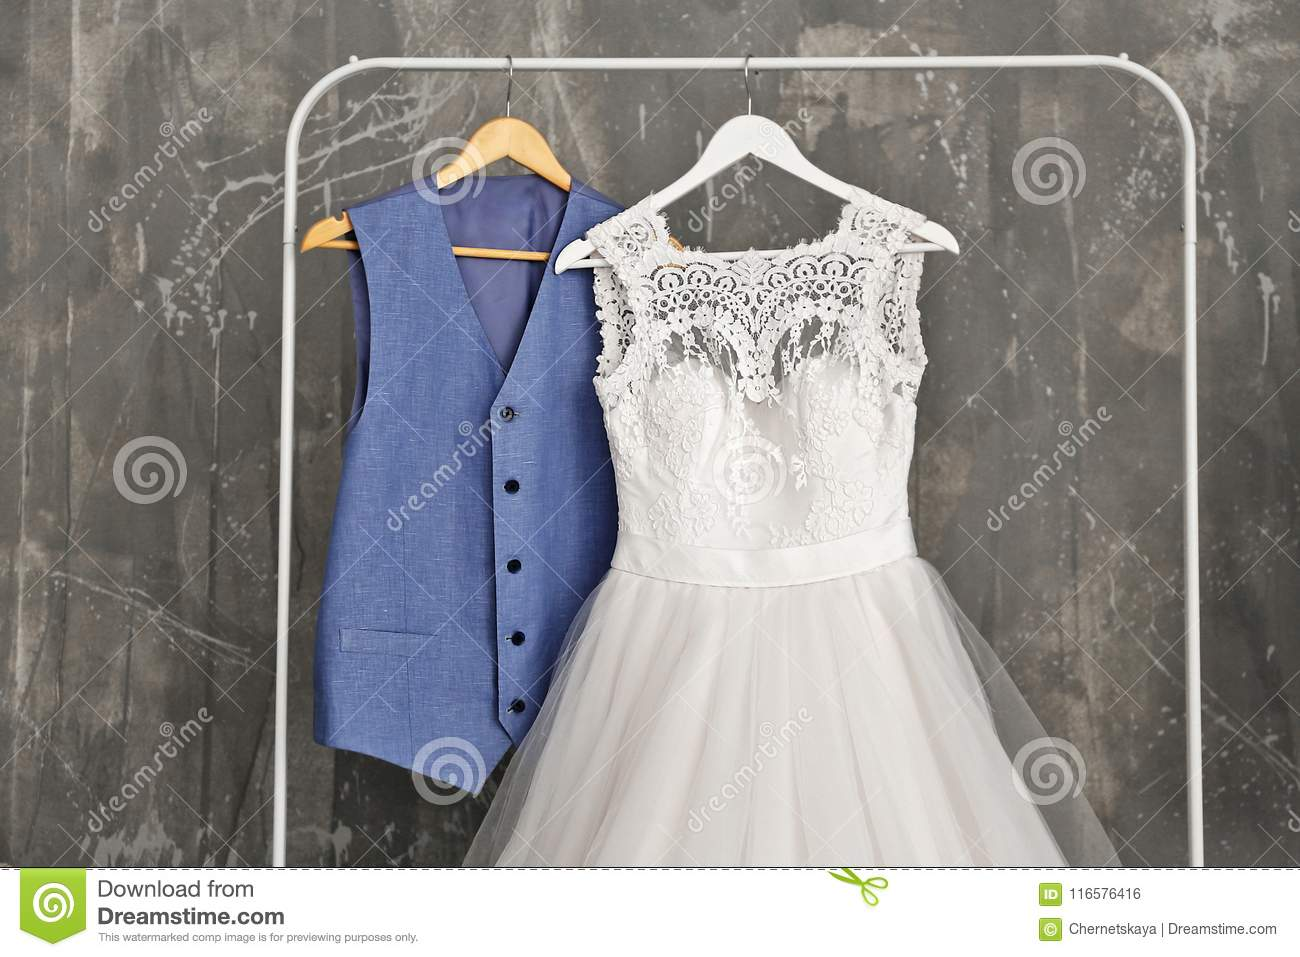 Bride Dress And Groom Suit In Dressing Room Stock Photo Image Of Creative Show 116576416,Beach Flowy Sleeveless Beach Flowy Wedding Dresses